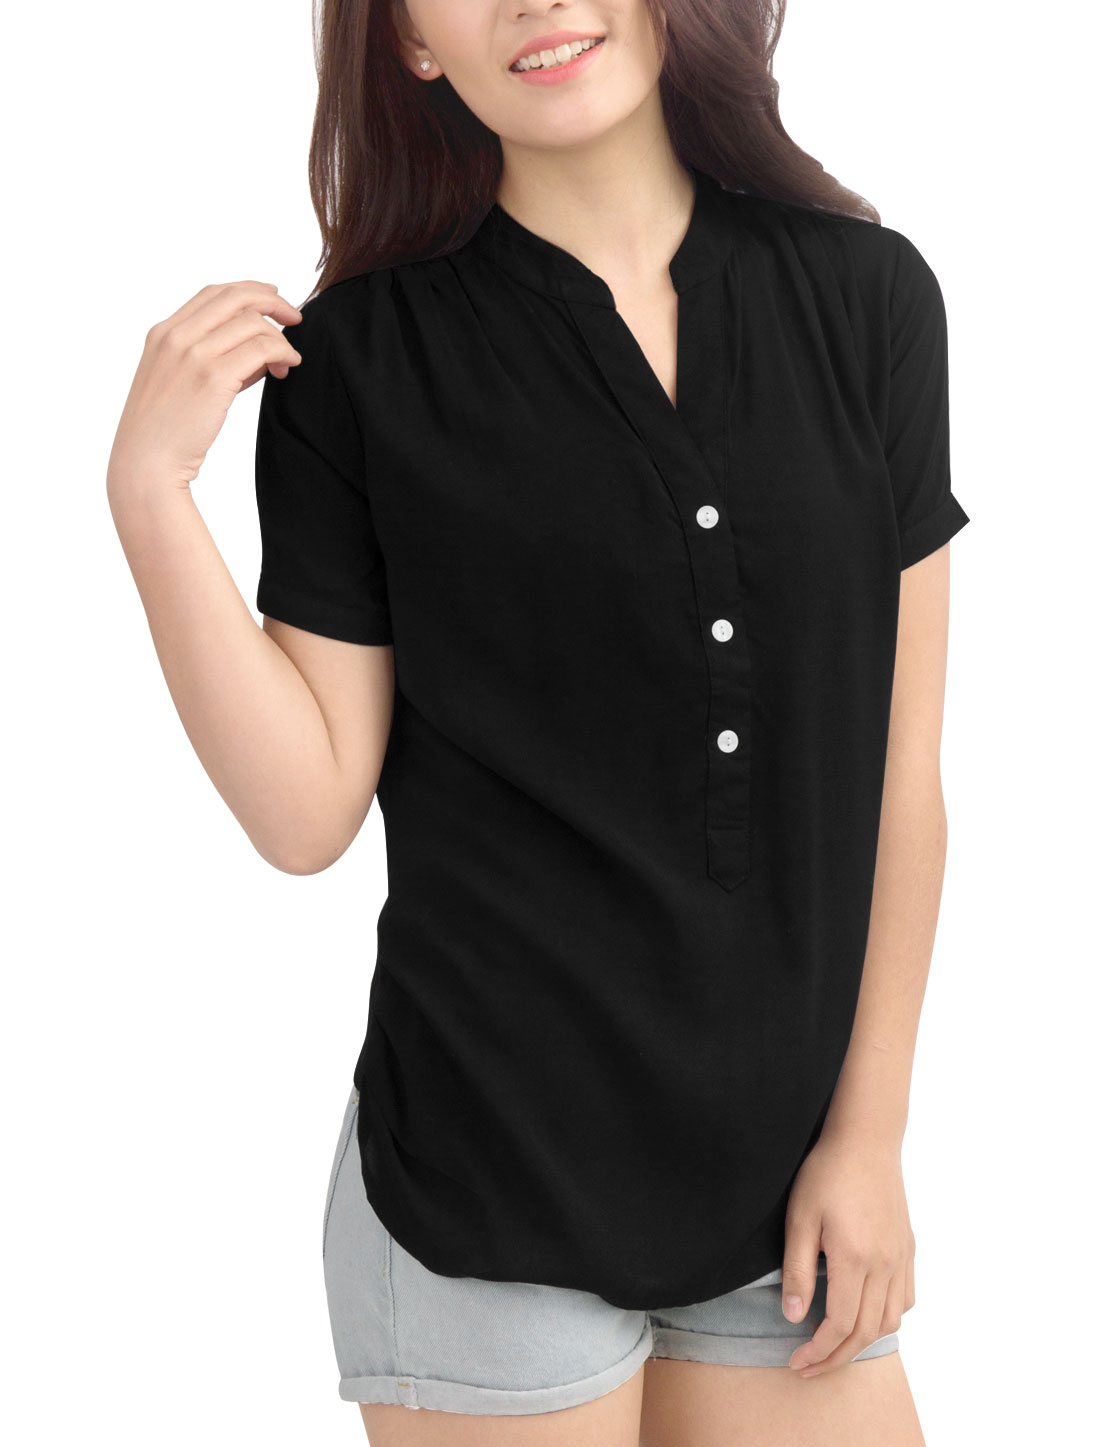 Women Ruched Side Buttons Cuffs Stylish Top Shirt Black XS